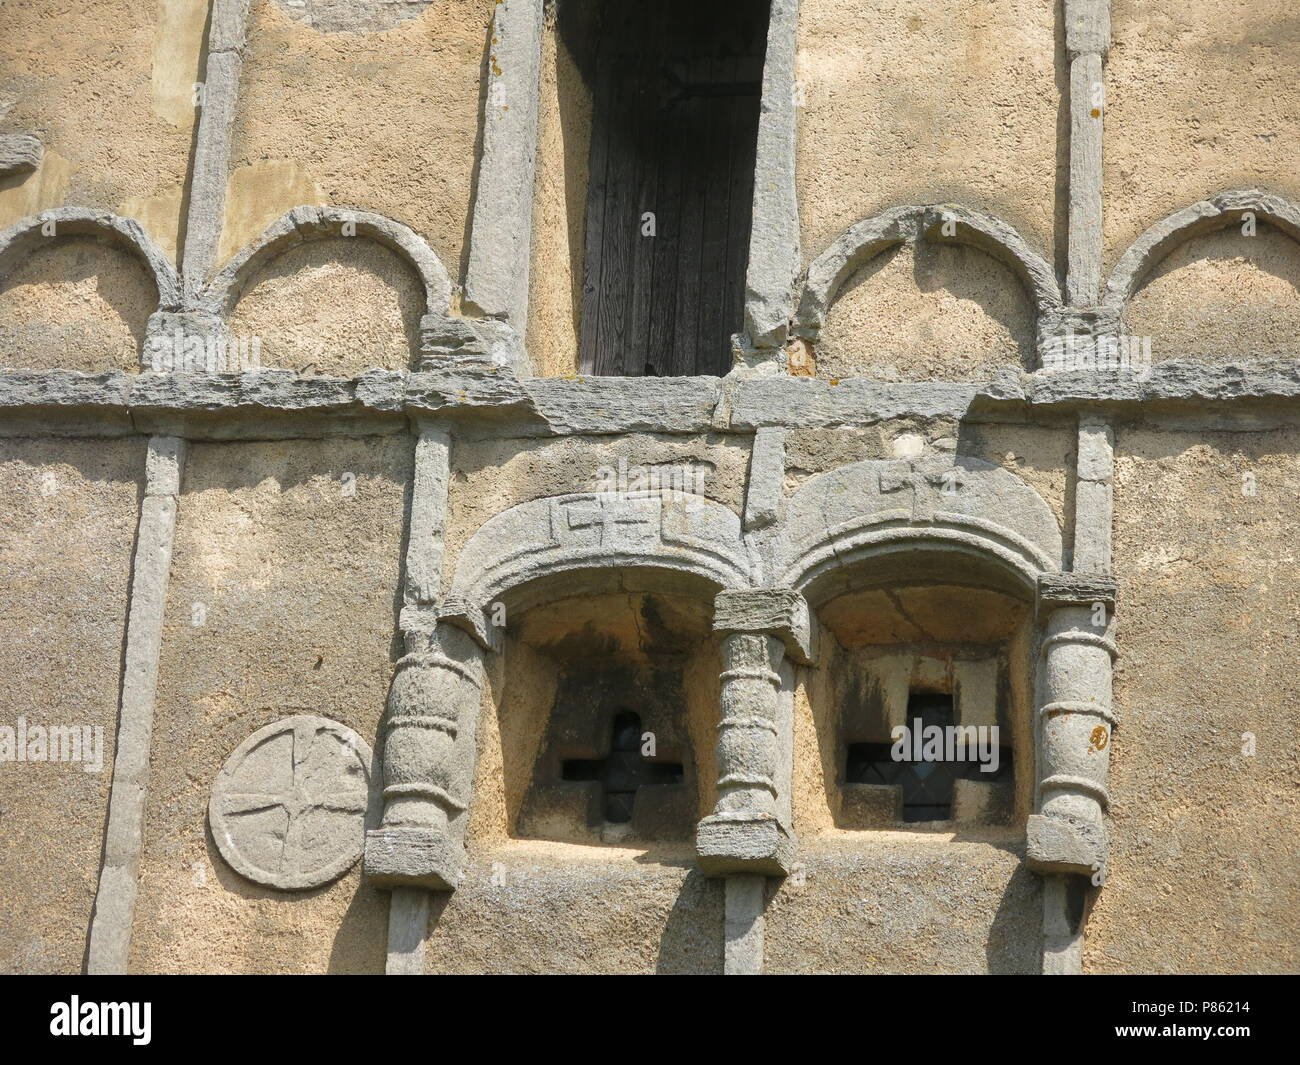 An exterior view of the 10th century Saxon church at Earls Barton, Northamptonshire, England; the construction of the stone tower dates from 970AD. - Stock Image